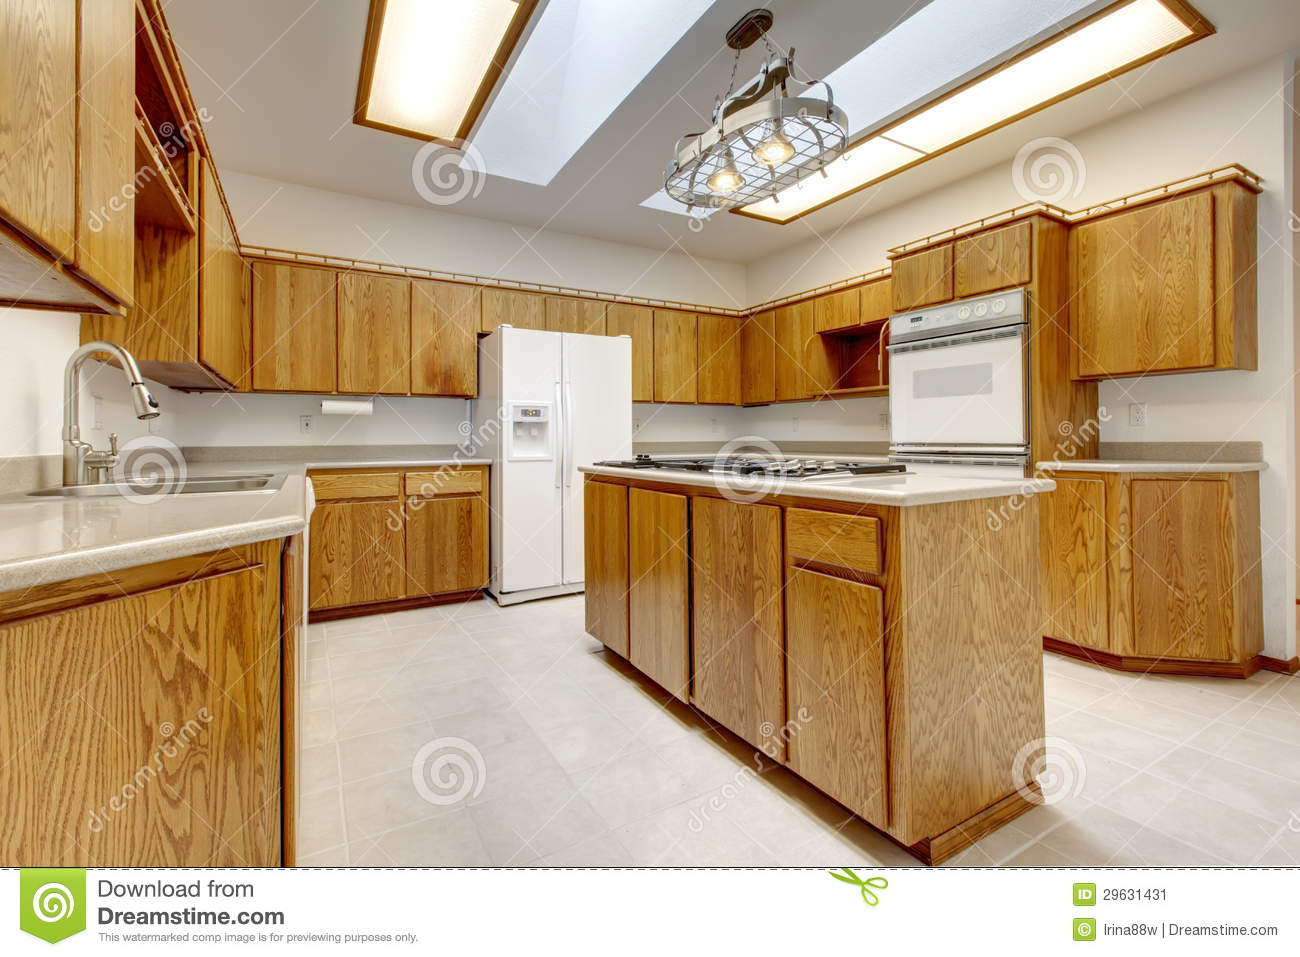 Wood kitchen with island without windows bright light